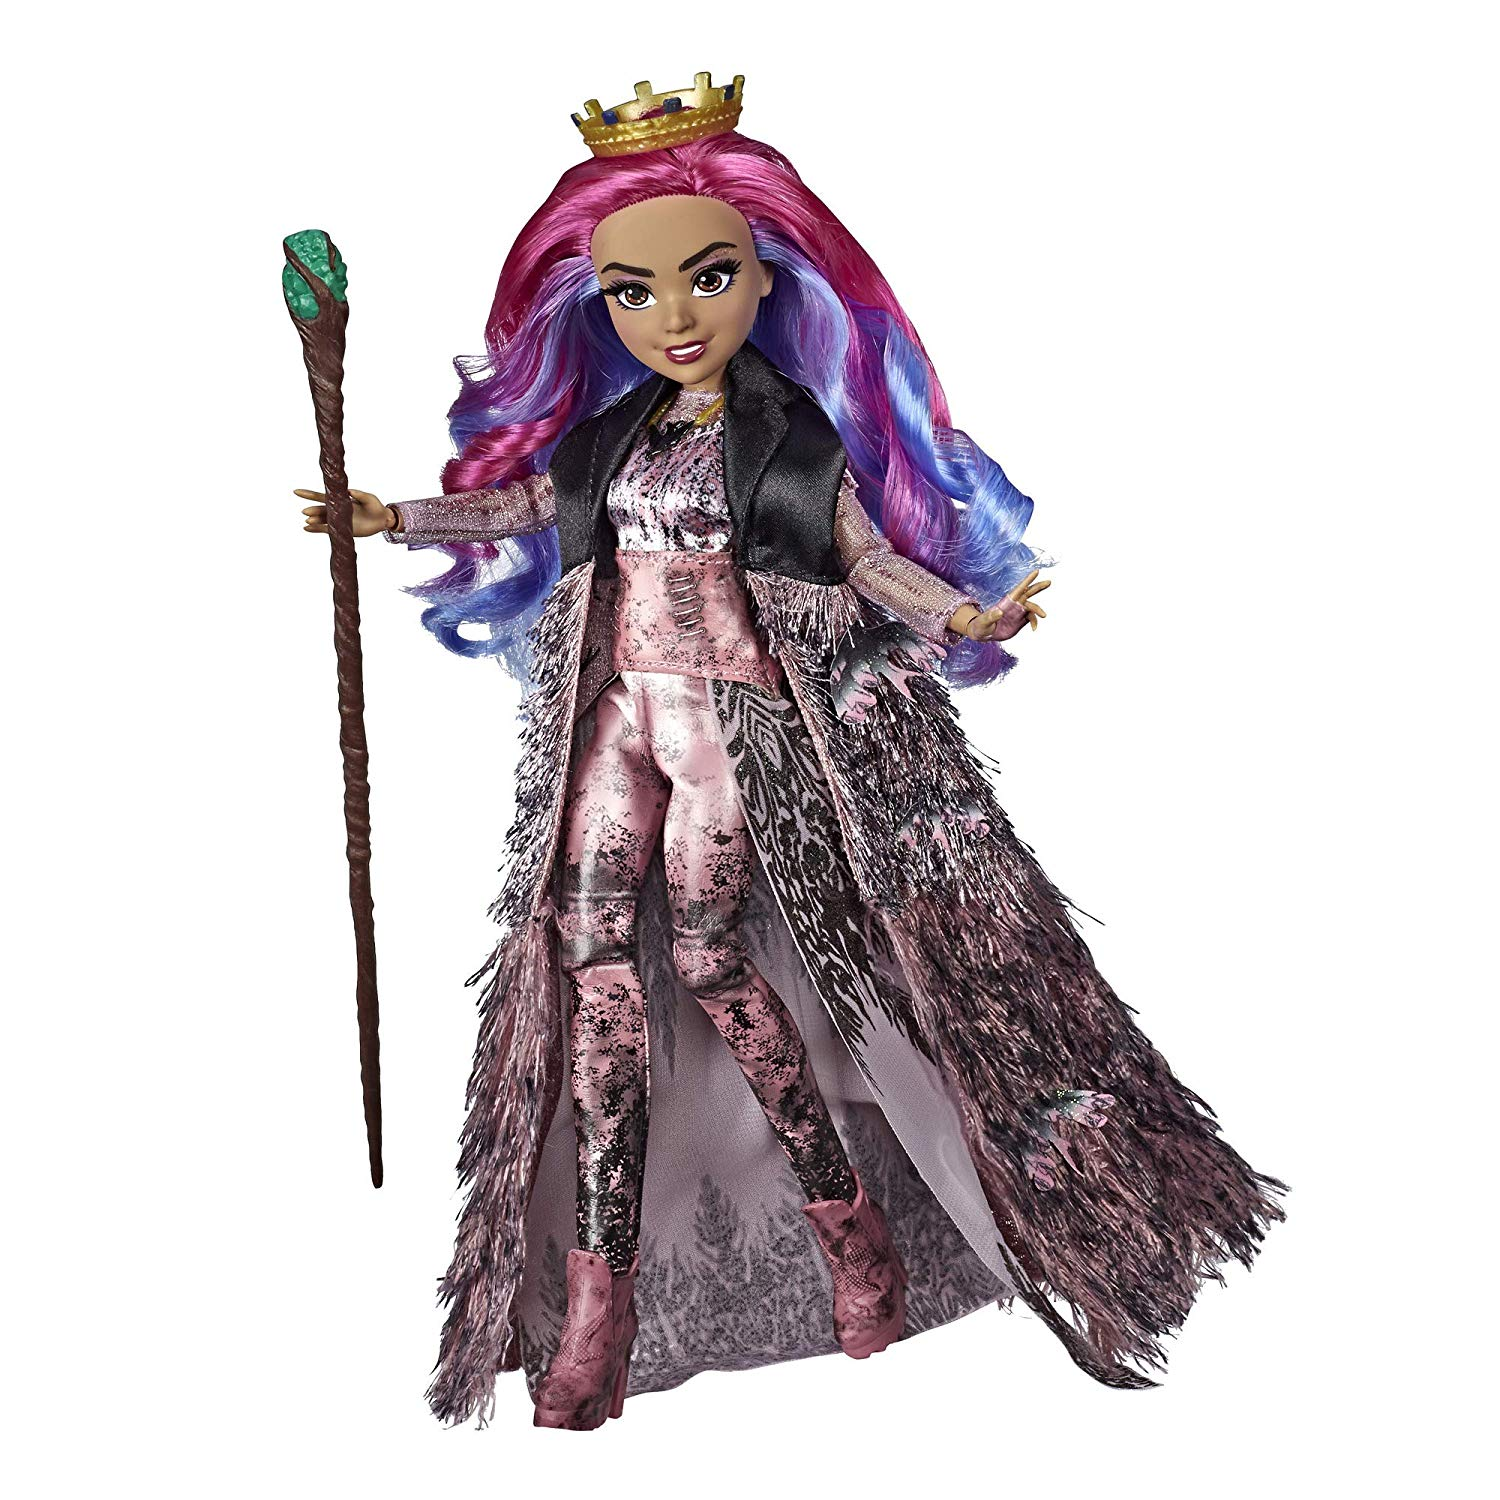 Details about Disney Descendants 3 Audrey Doll Deluxe Queen of Mean Toy  from Descendants Three